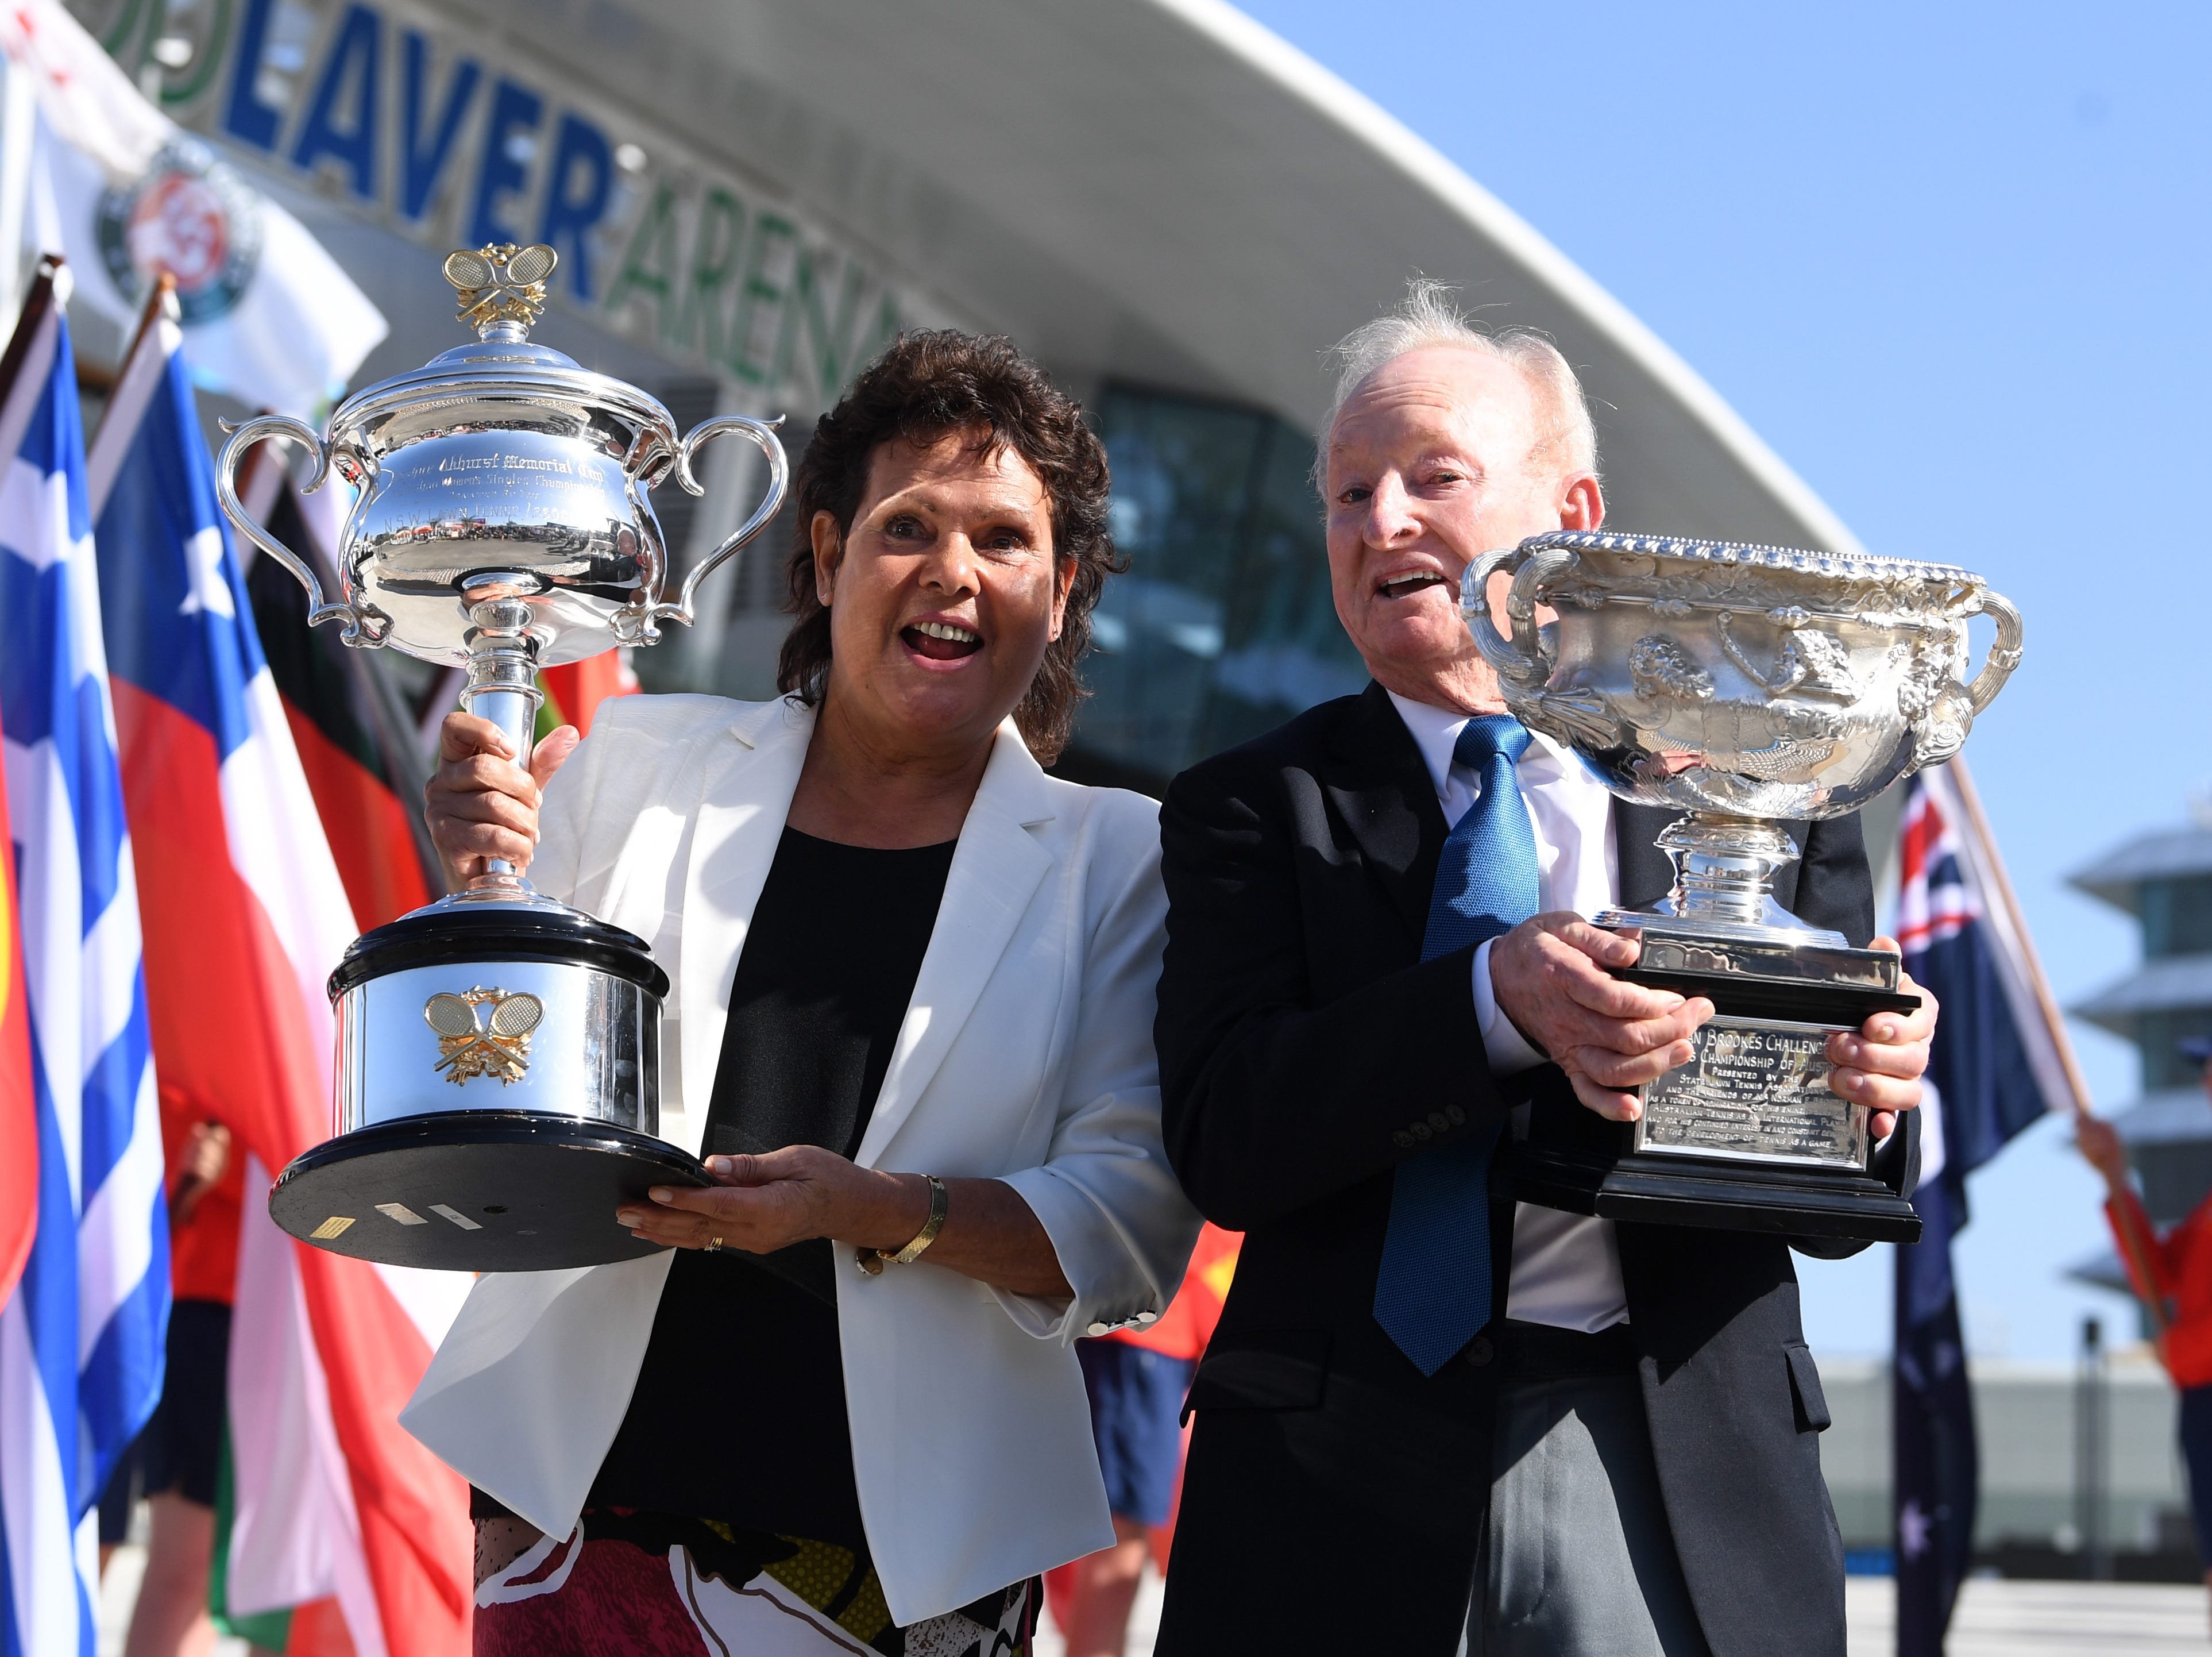 Australian tennis legends Evonne Goolagong Cawley, left, and Rod Laver bring the Daphne Akhurst Memorial Cup (given to the women's singles champion) and the Norman Brookes Challenge Cup (given to the men's singles champion) to Melbourne Park.